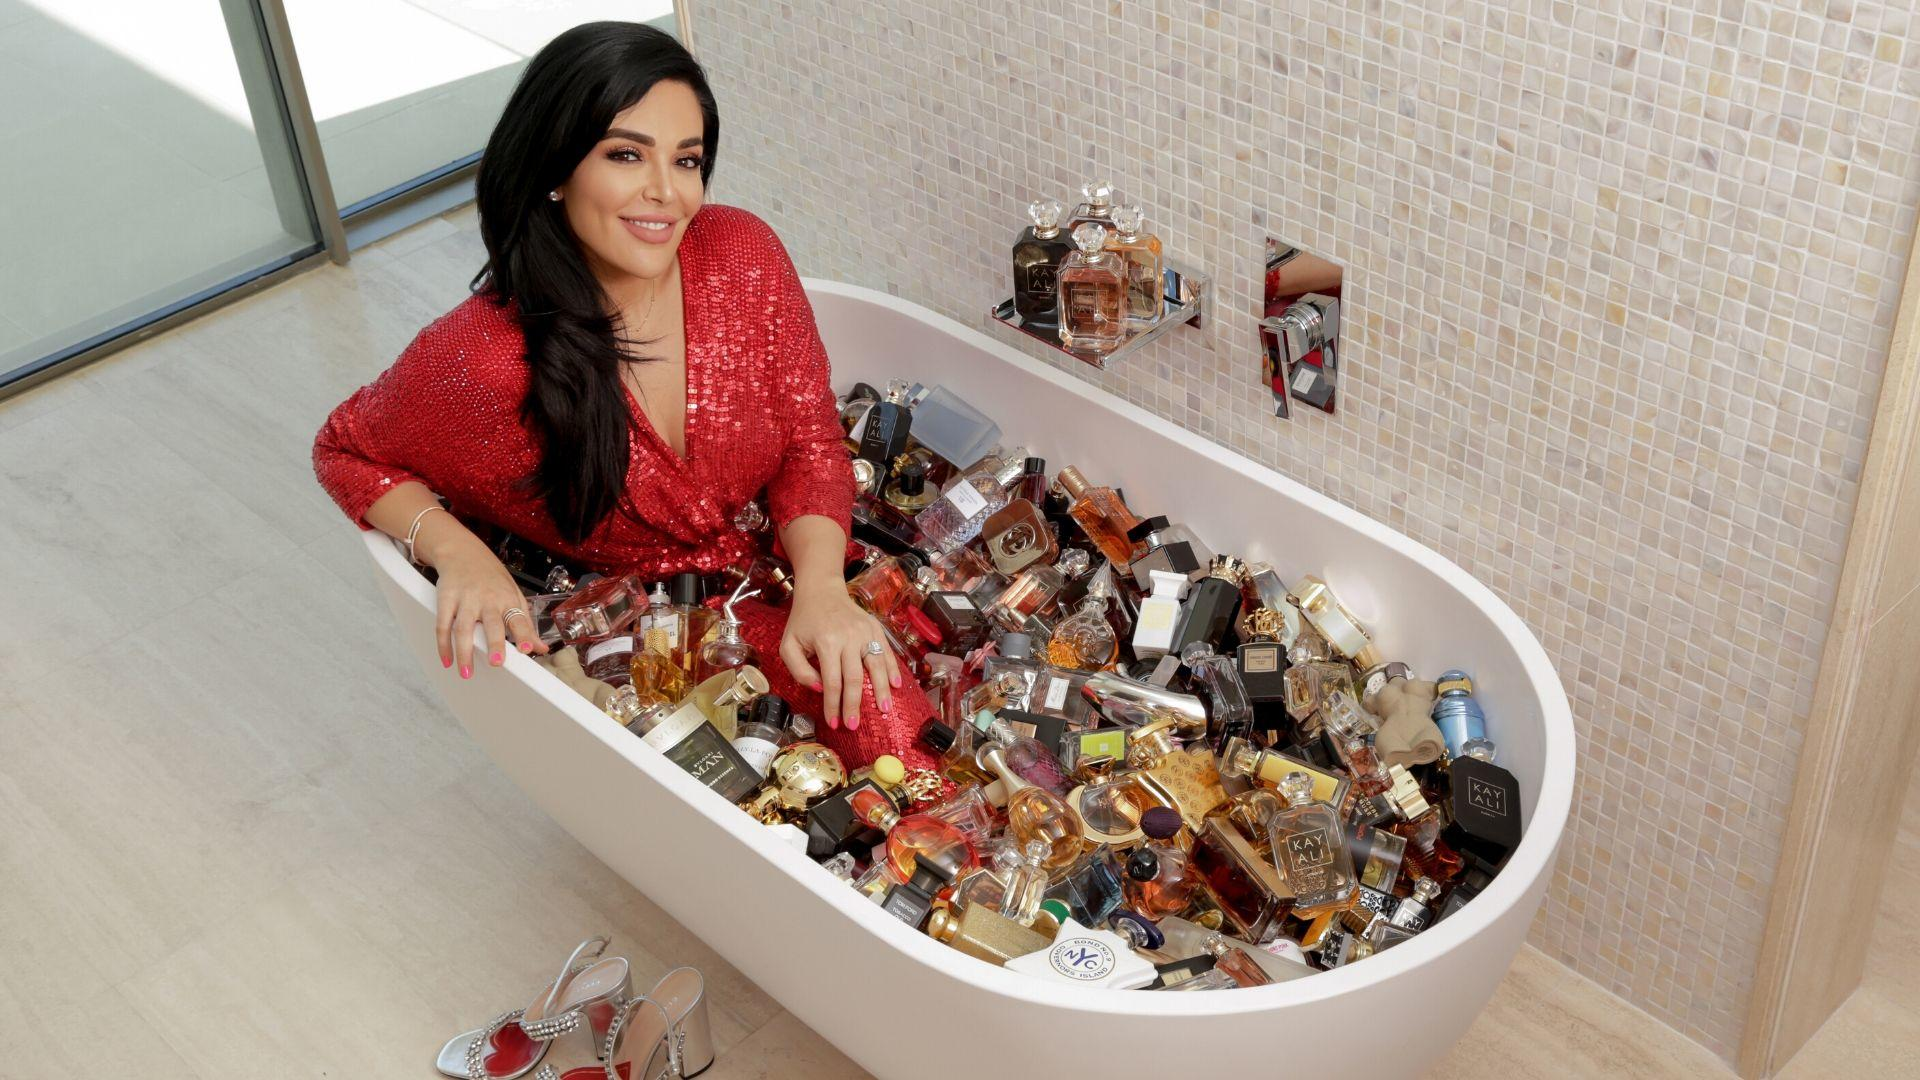 Beauty Diaries: Mona Kattan On How To Select A Fragrance For Your Wedding And Make It Last All Day